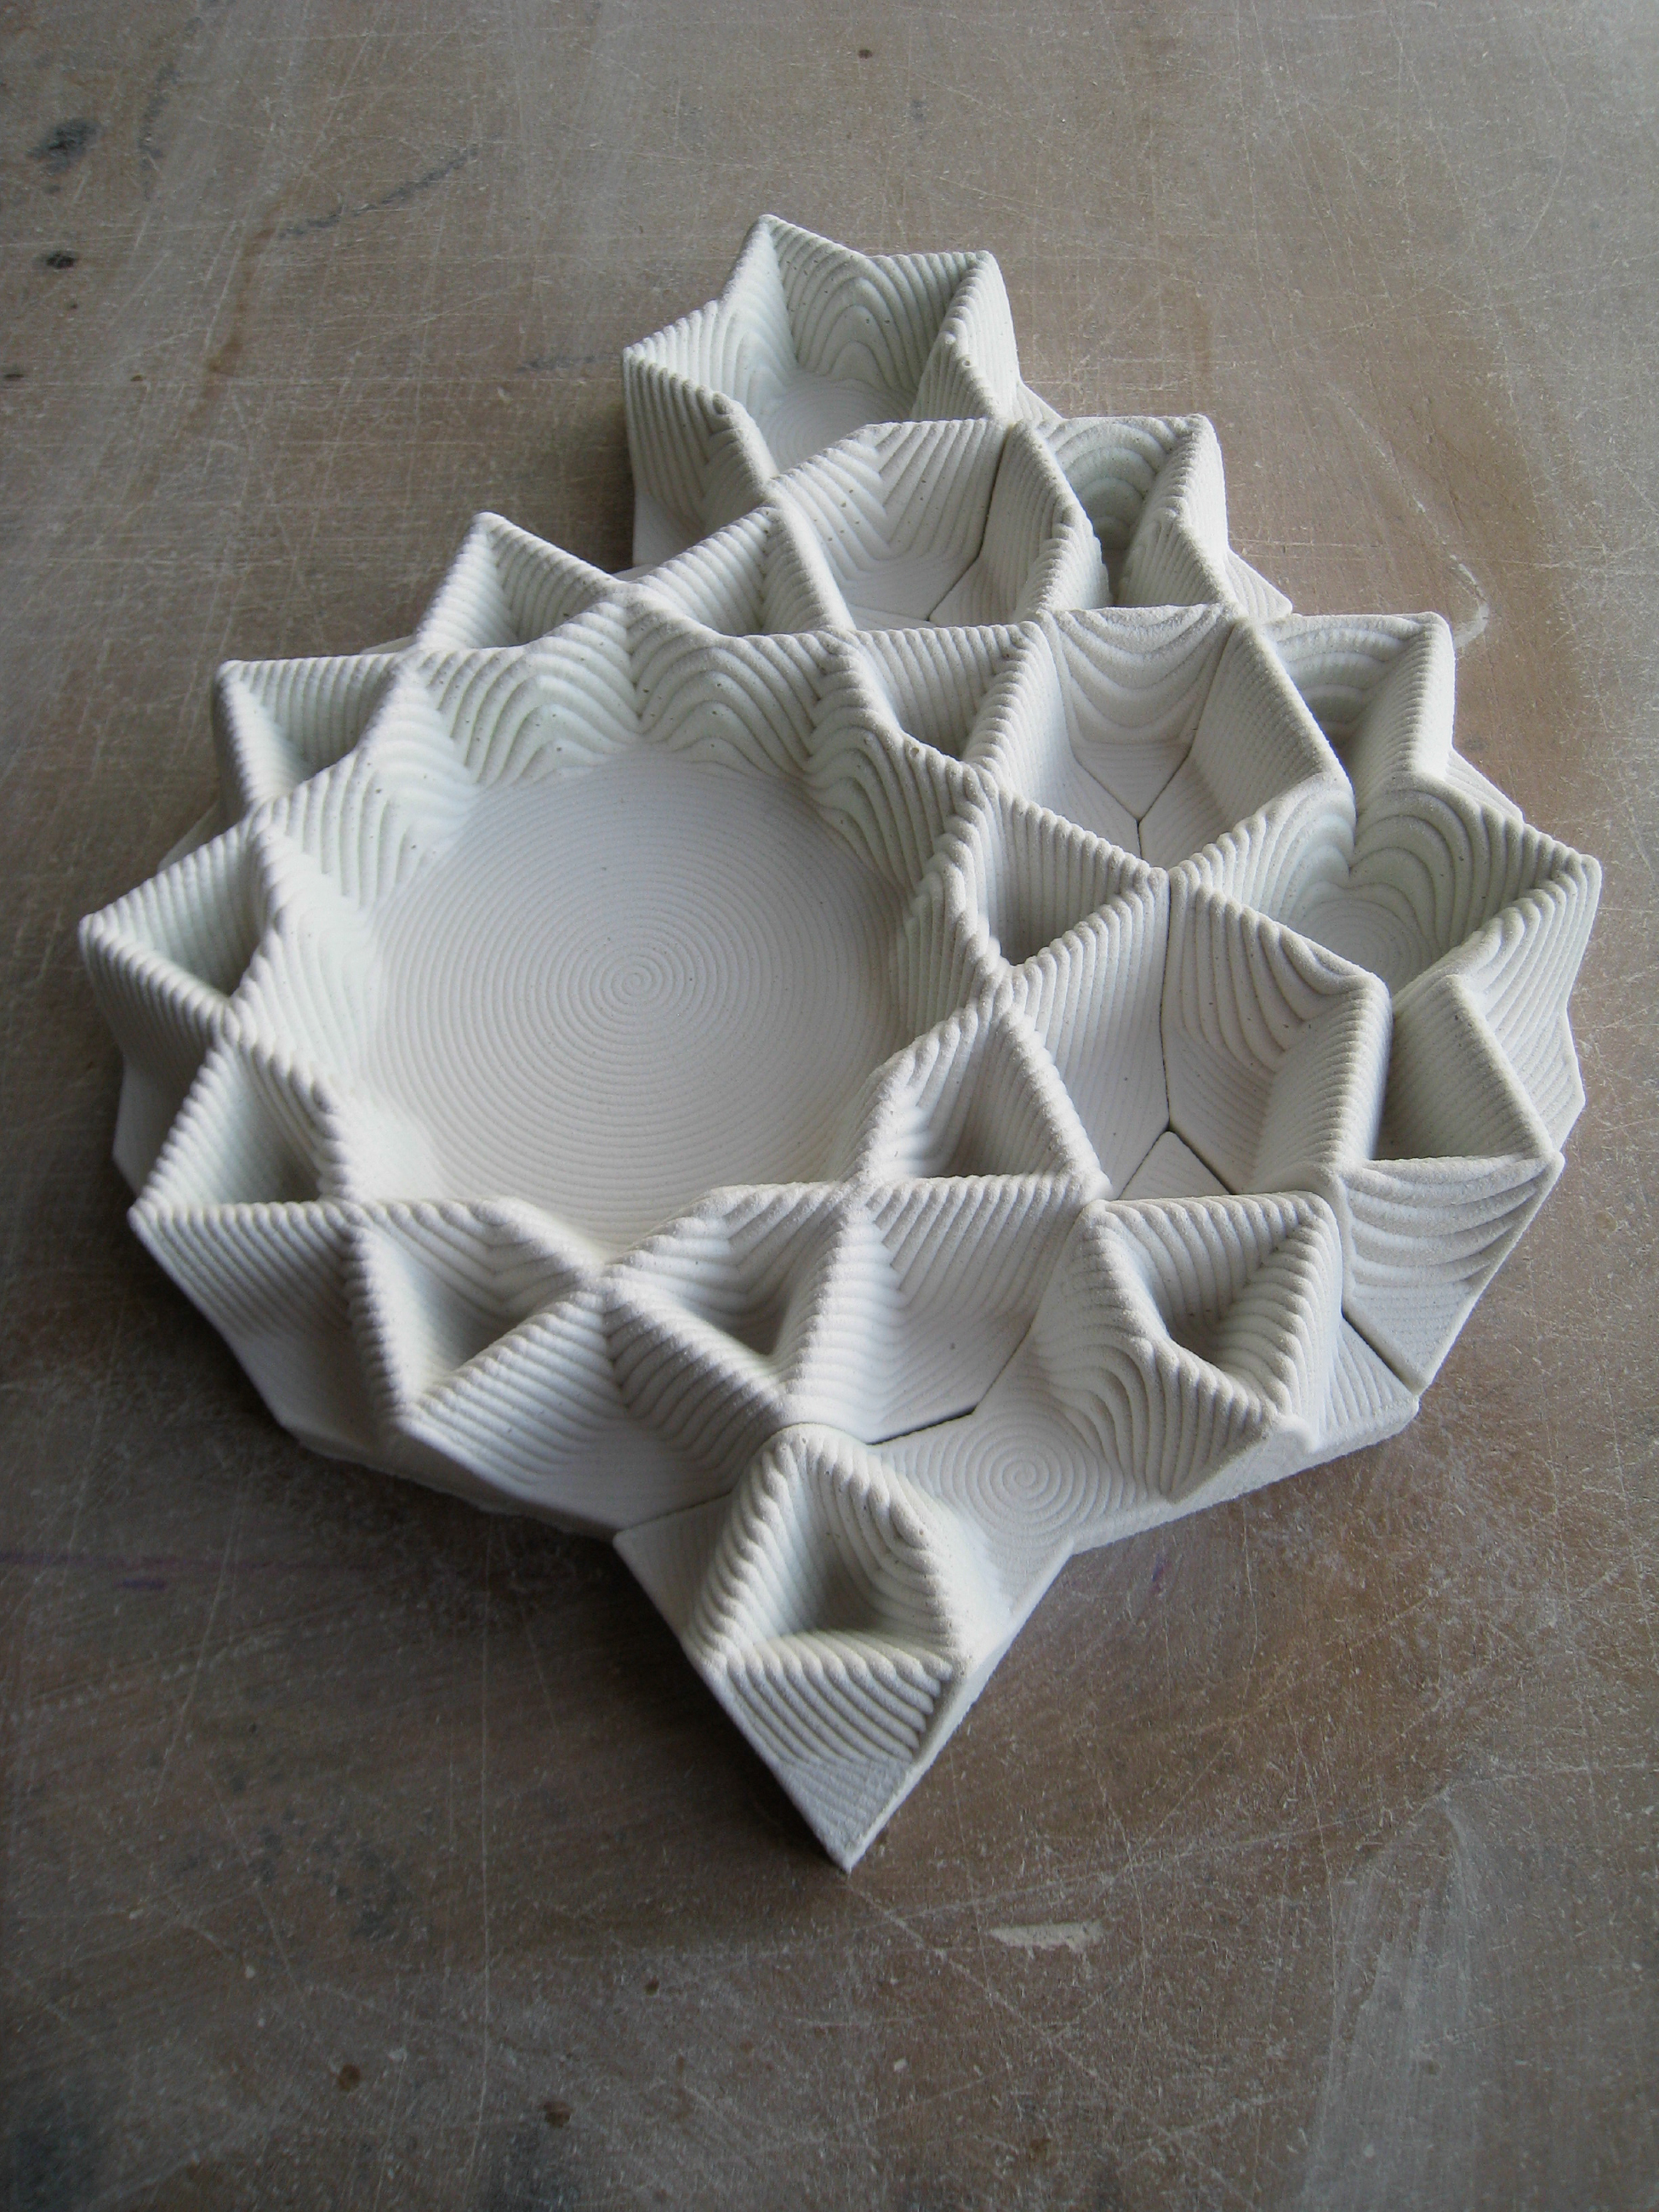 Data clay projects digital islam penrose tiling system five silicone rubber positives of penrose tiles for slip casting molds one for each penrose tile type which i used to create the two part slip casting dailygadgetfo Images